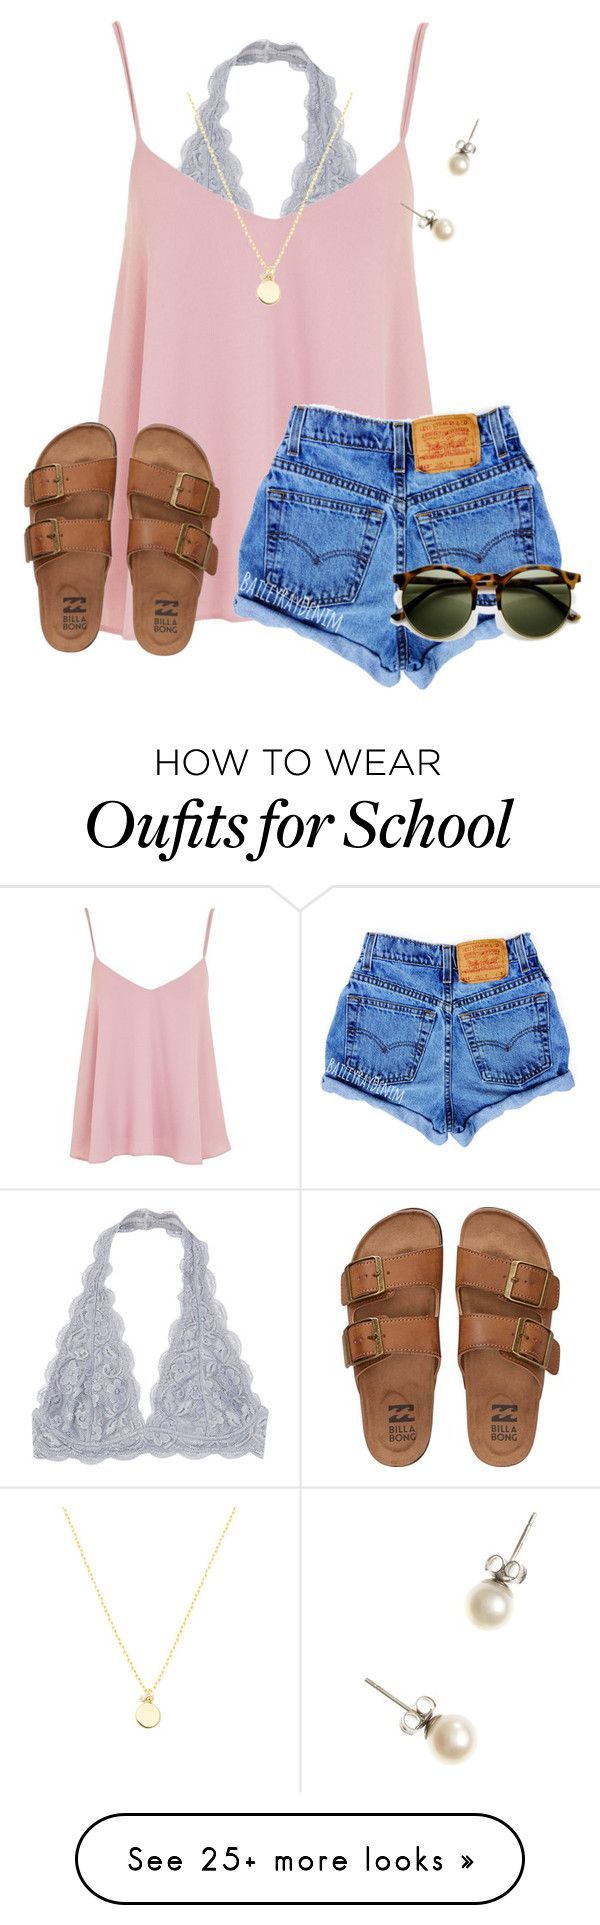 """I had a great title but I forgot insert quote here..."" by auburnlady on Polyvore featuring Topshop, J.Crew, Billabong and Sydney Evan"